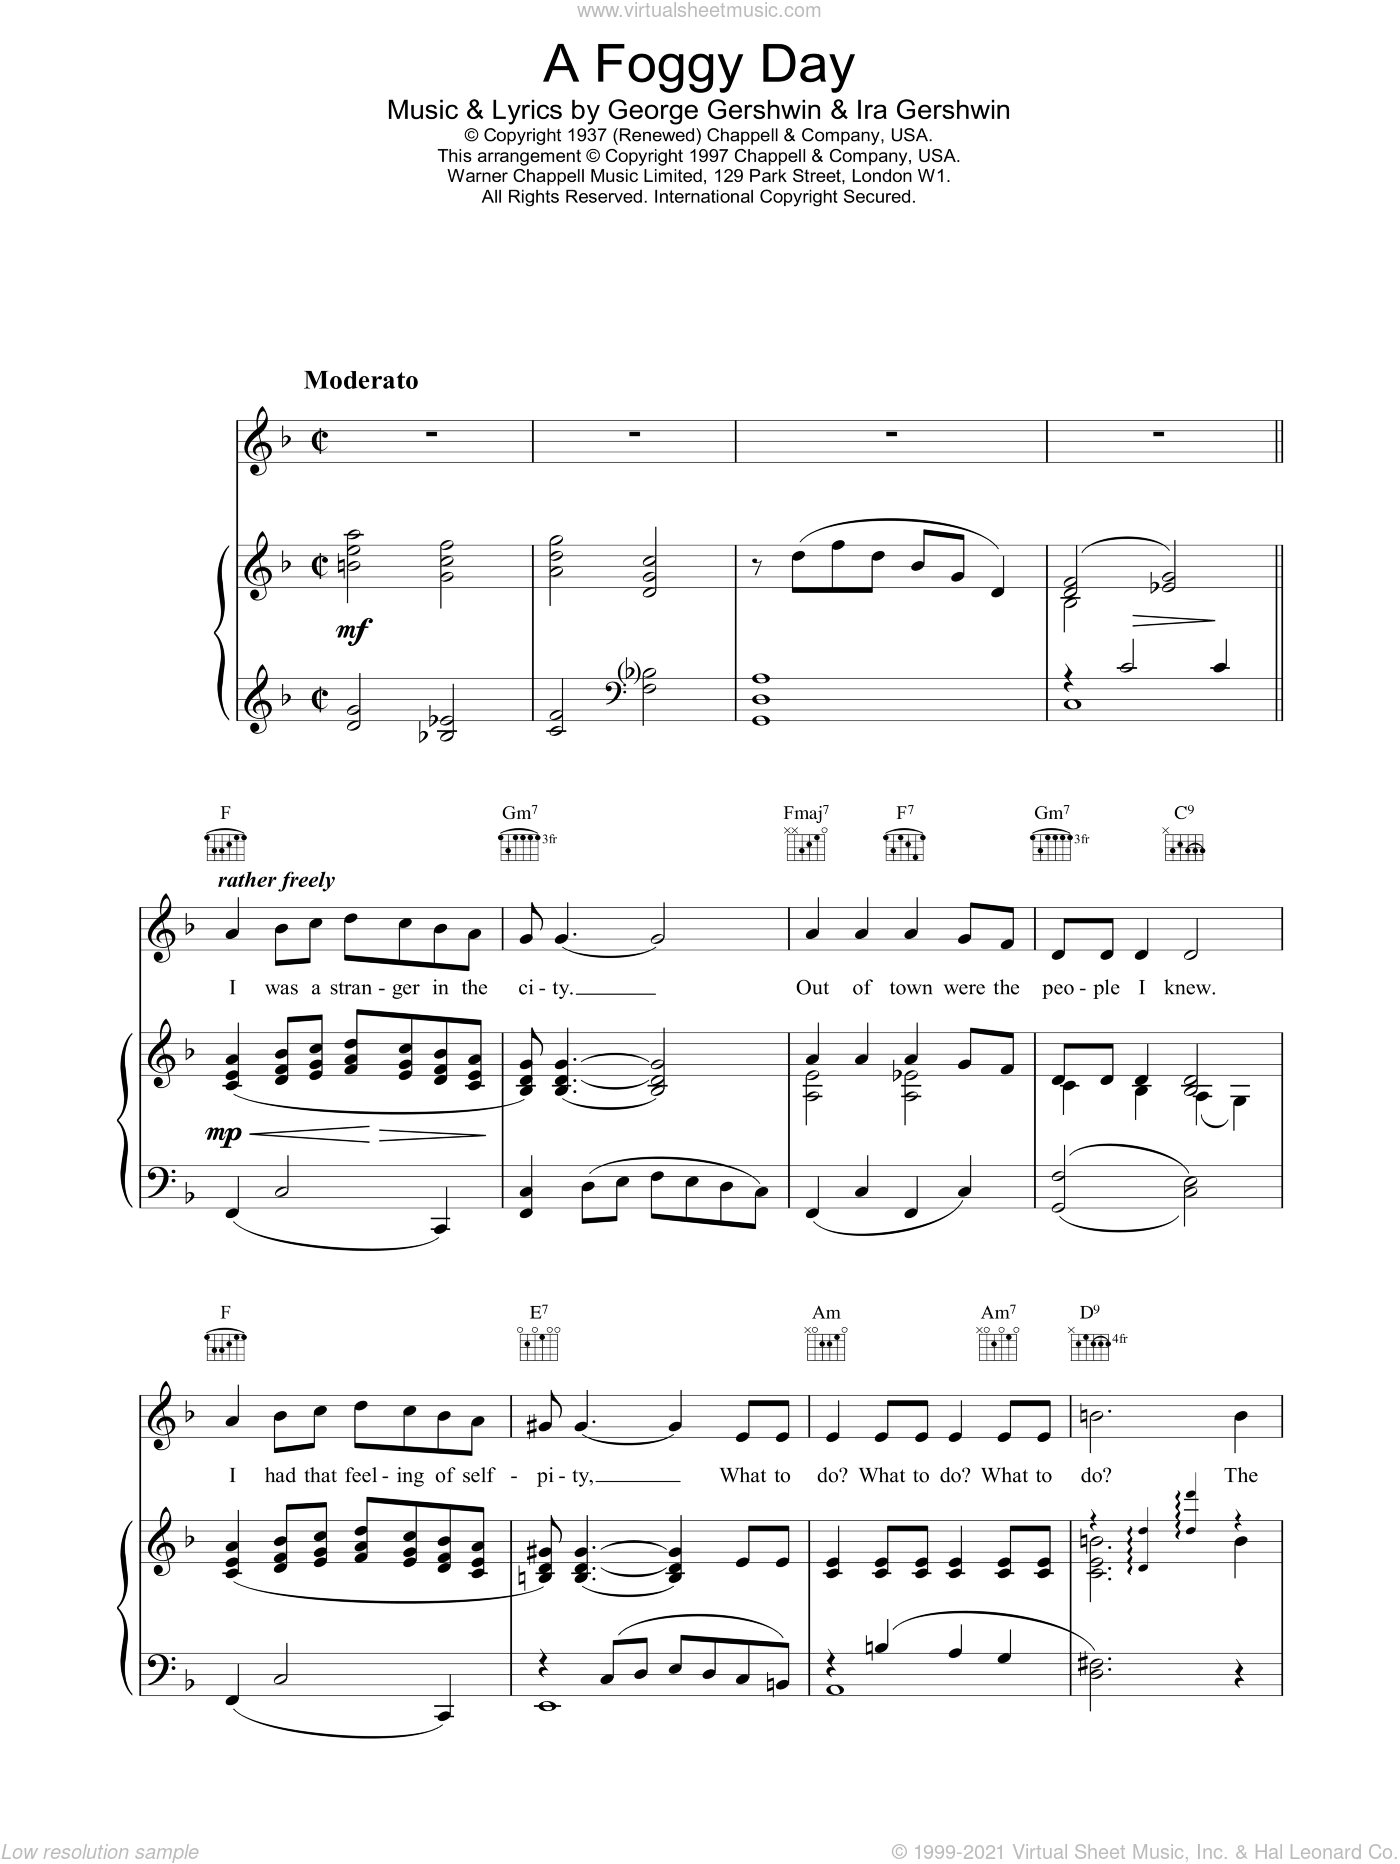 A Foggy Day (In London Town) sheet music for voice, piano or guitar by George Gershwin